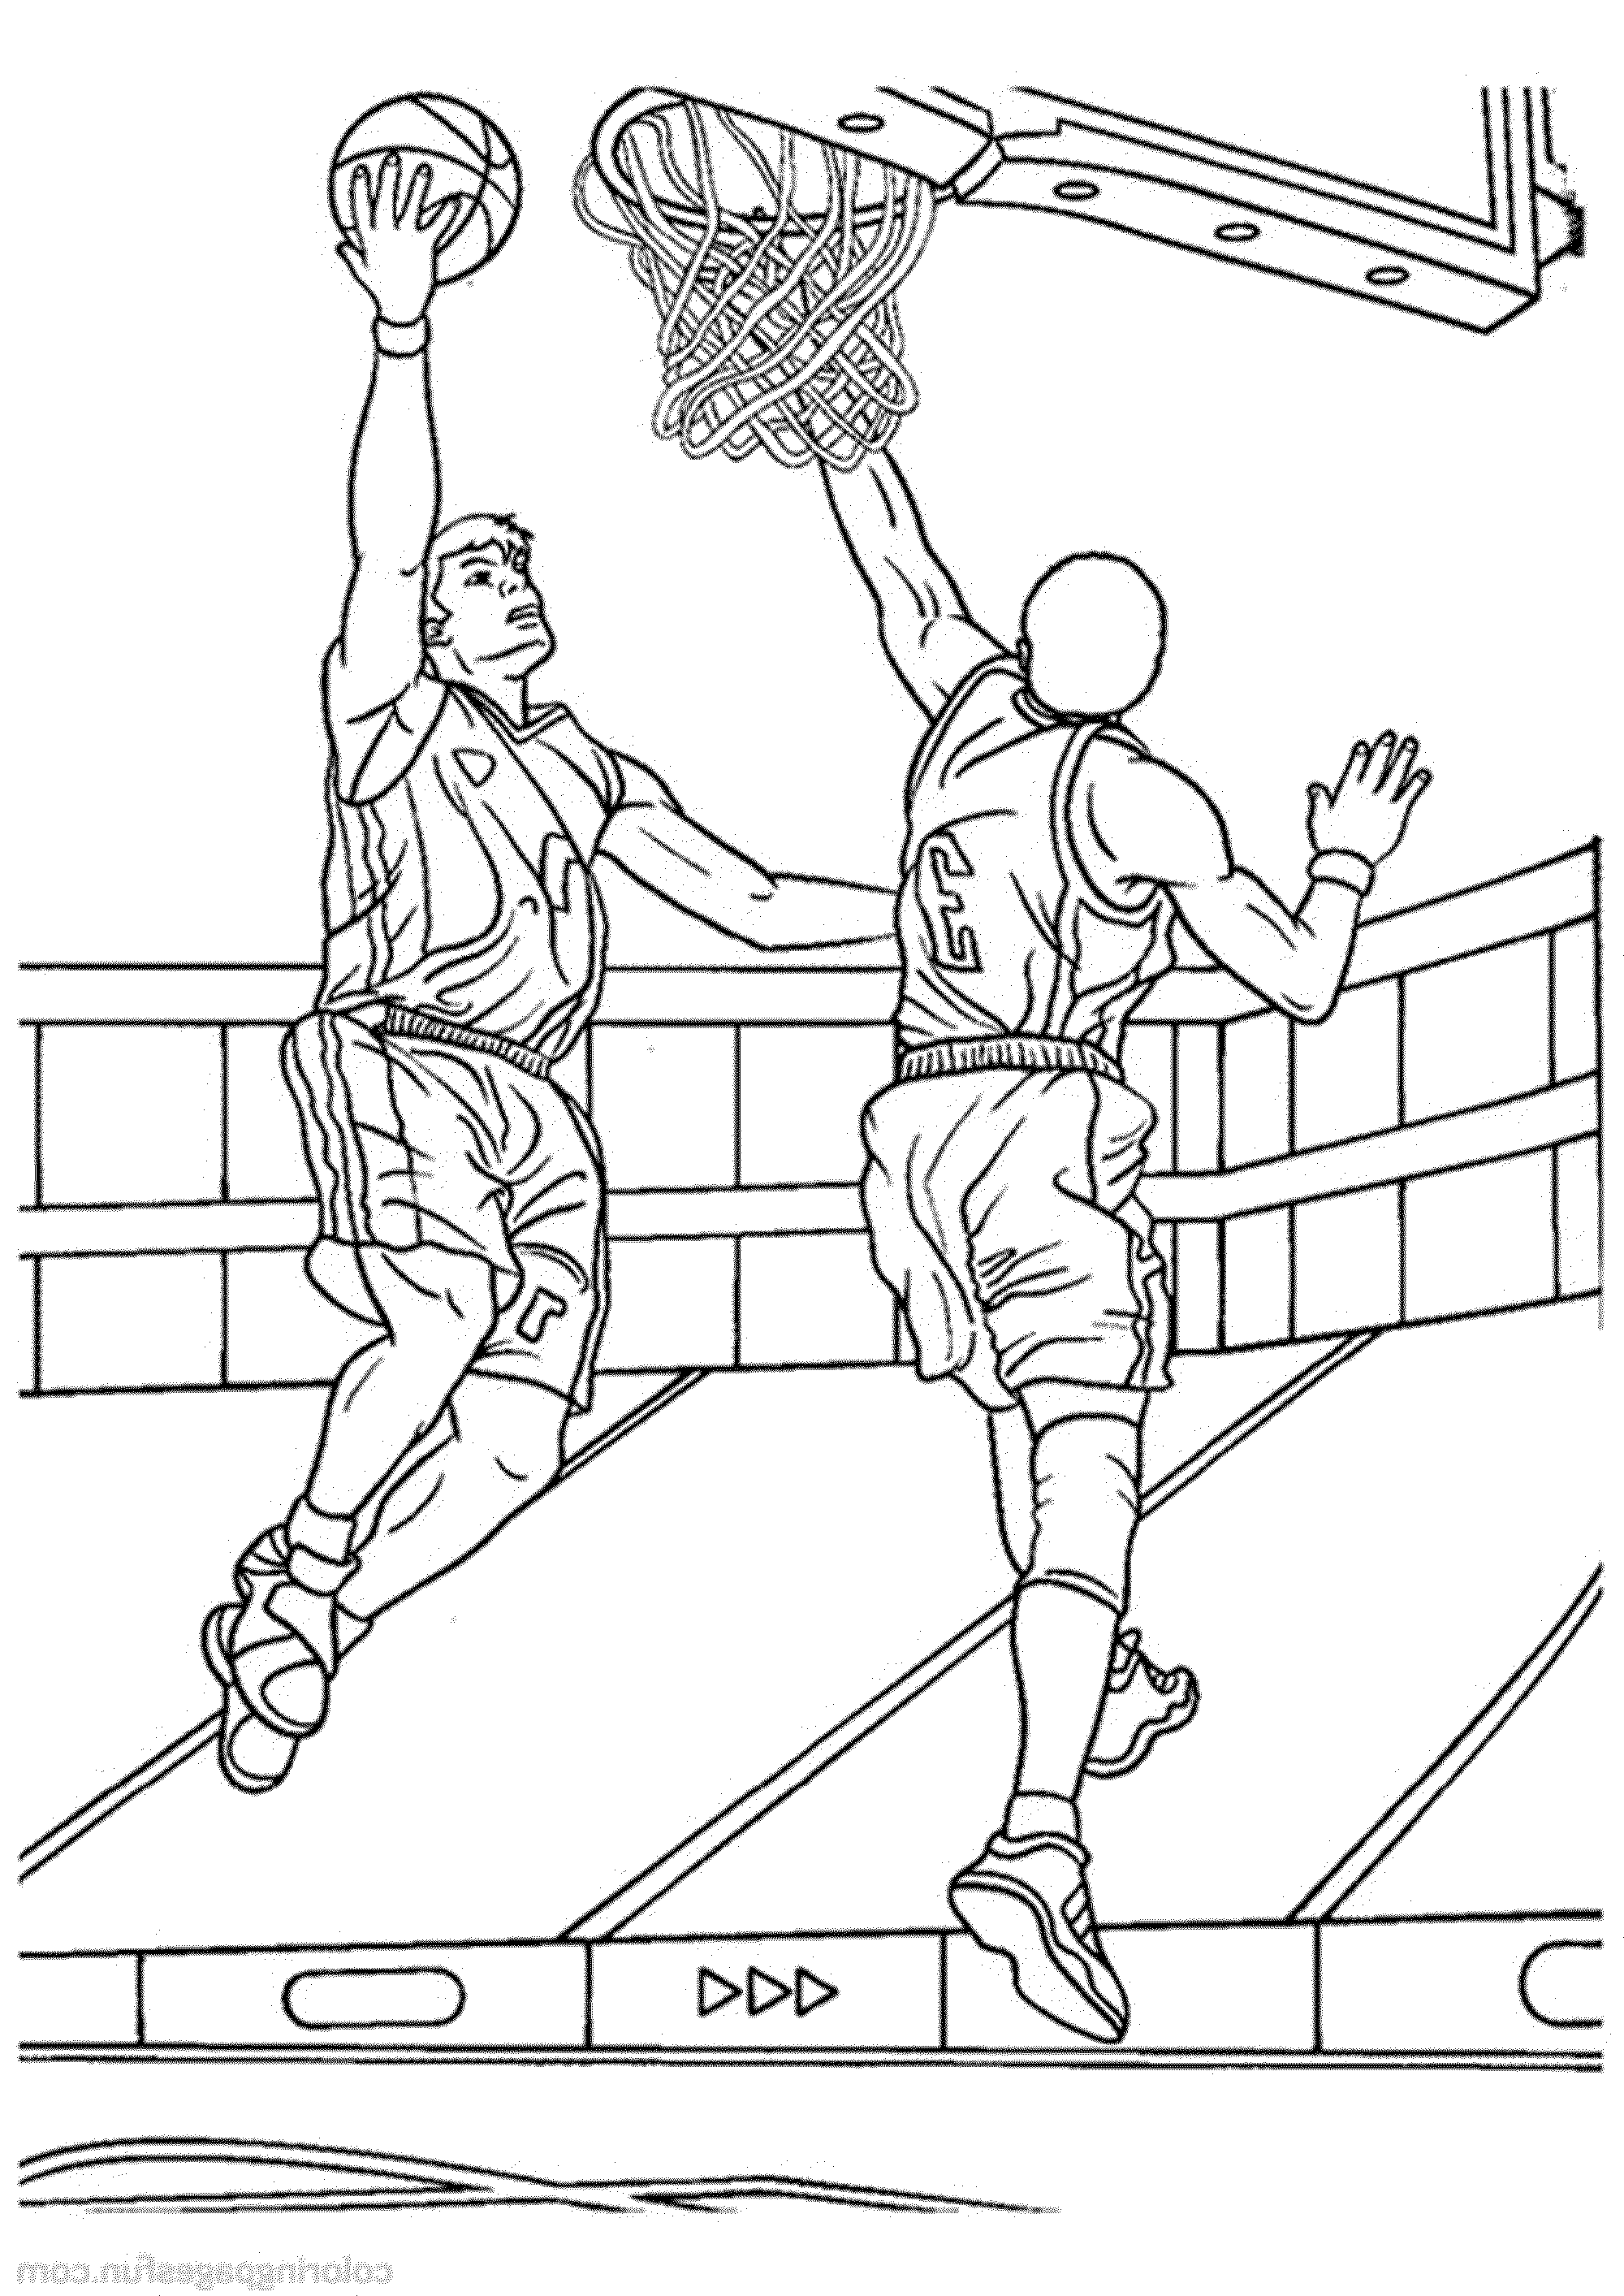 stunning college basketball coloring pages ideas - printable ... - College Basketball Coloring Pages